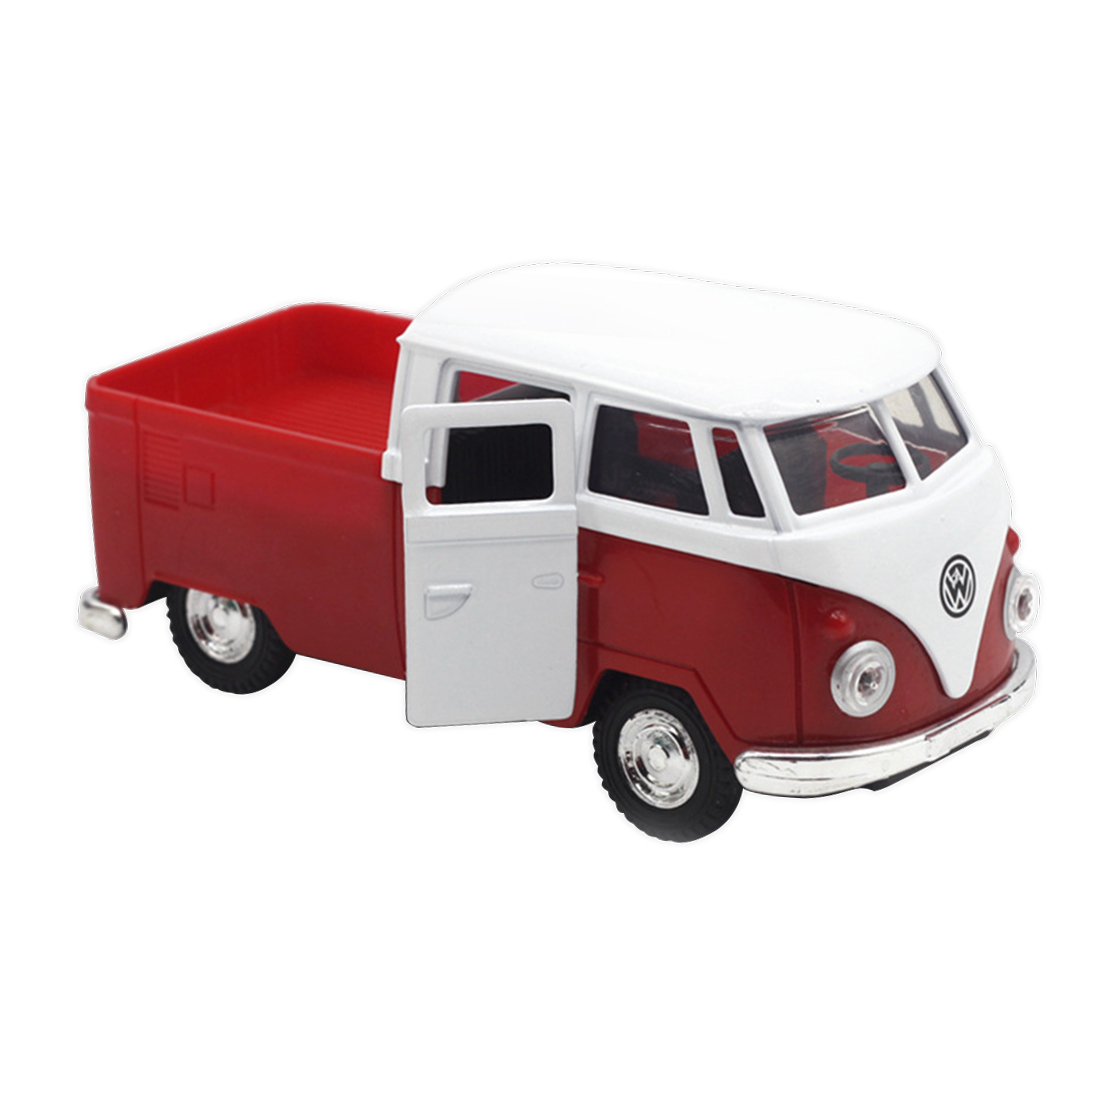 Red simulation 1:32 sound and light music pull back retro van truck fire truck alloy model